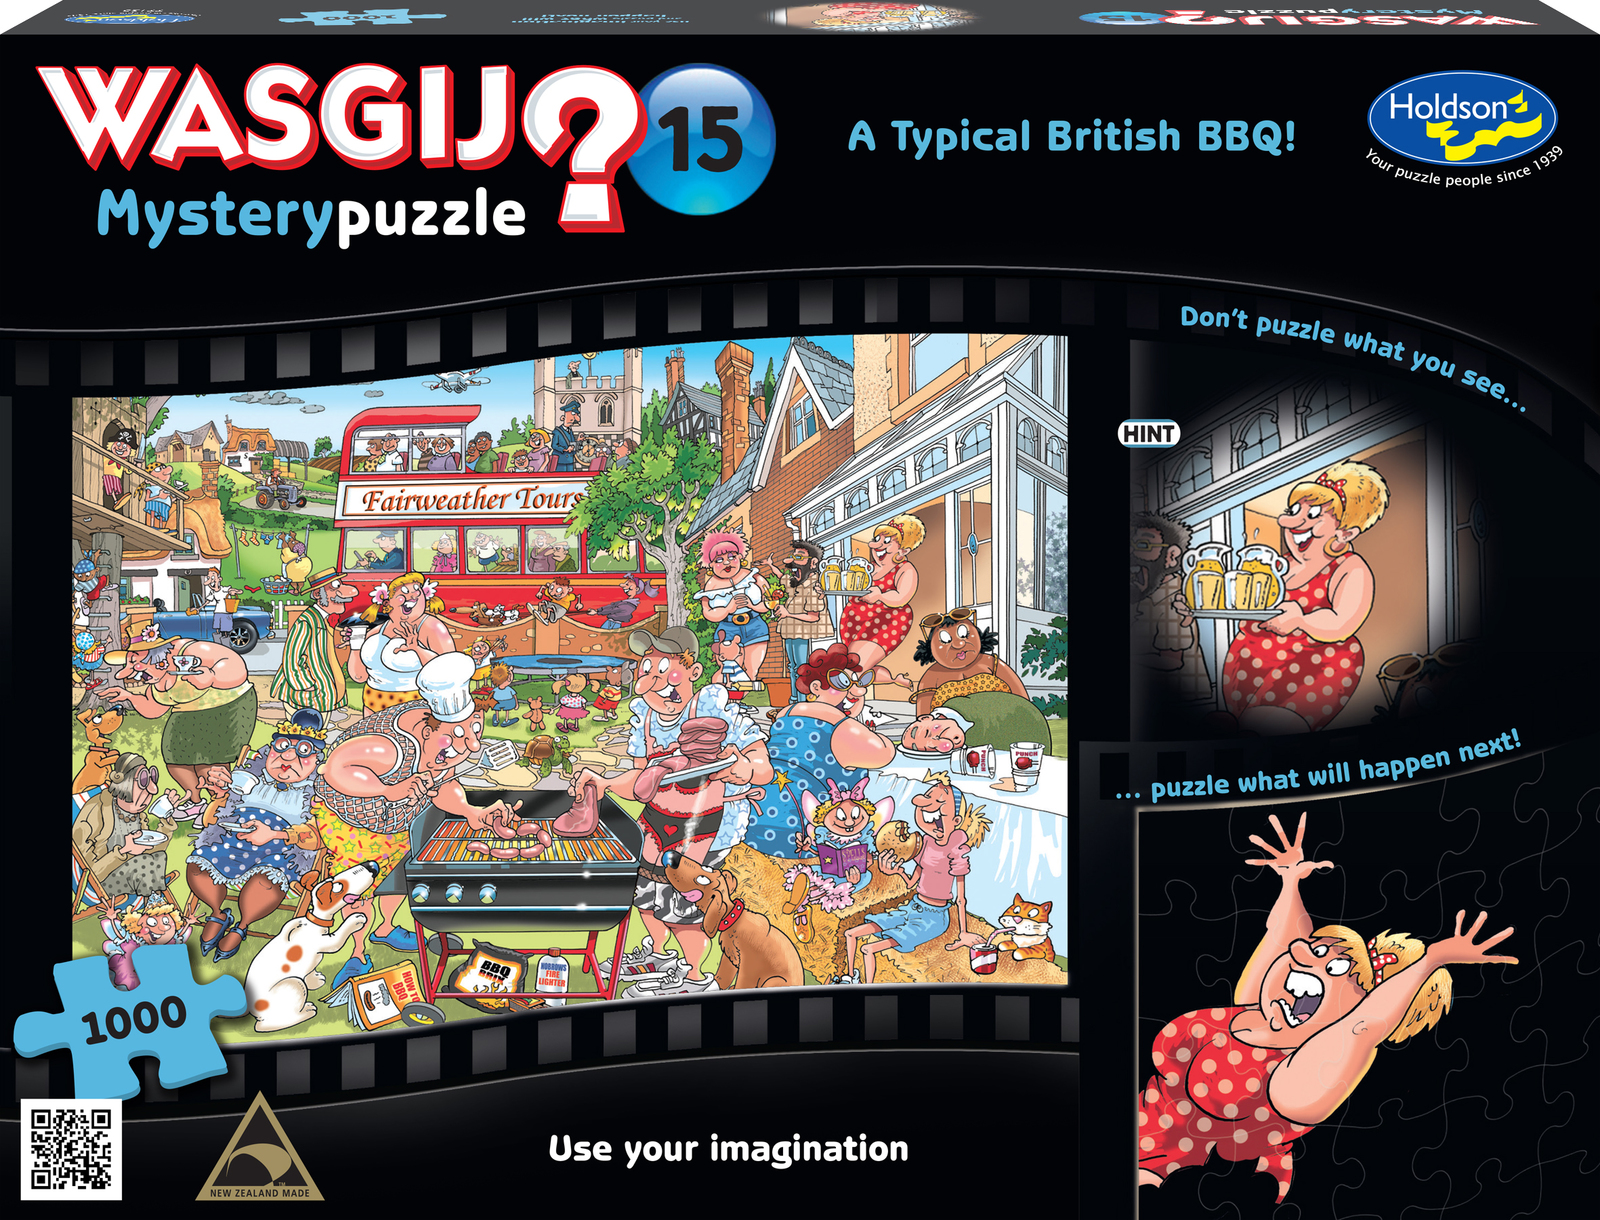 Wasgij: 1000 Piece Puzzle - A Typical British BBQ! image